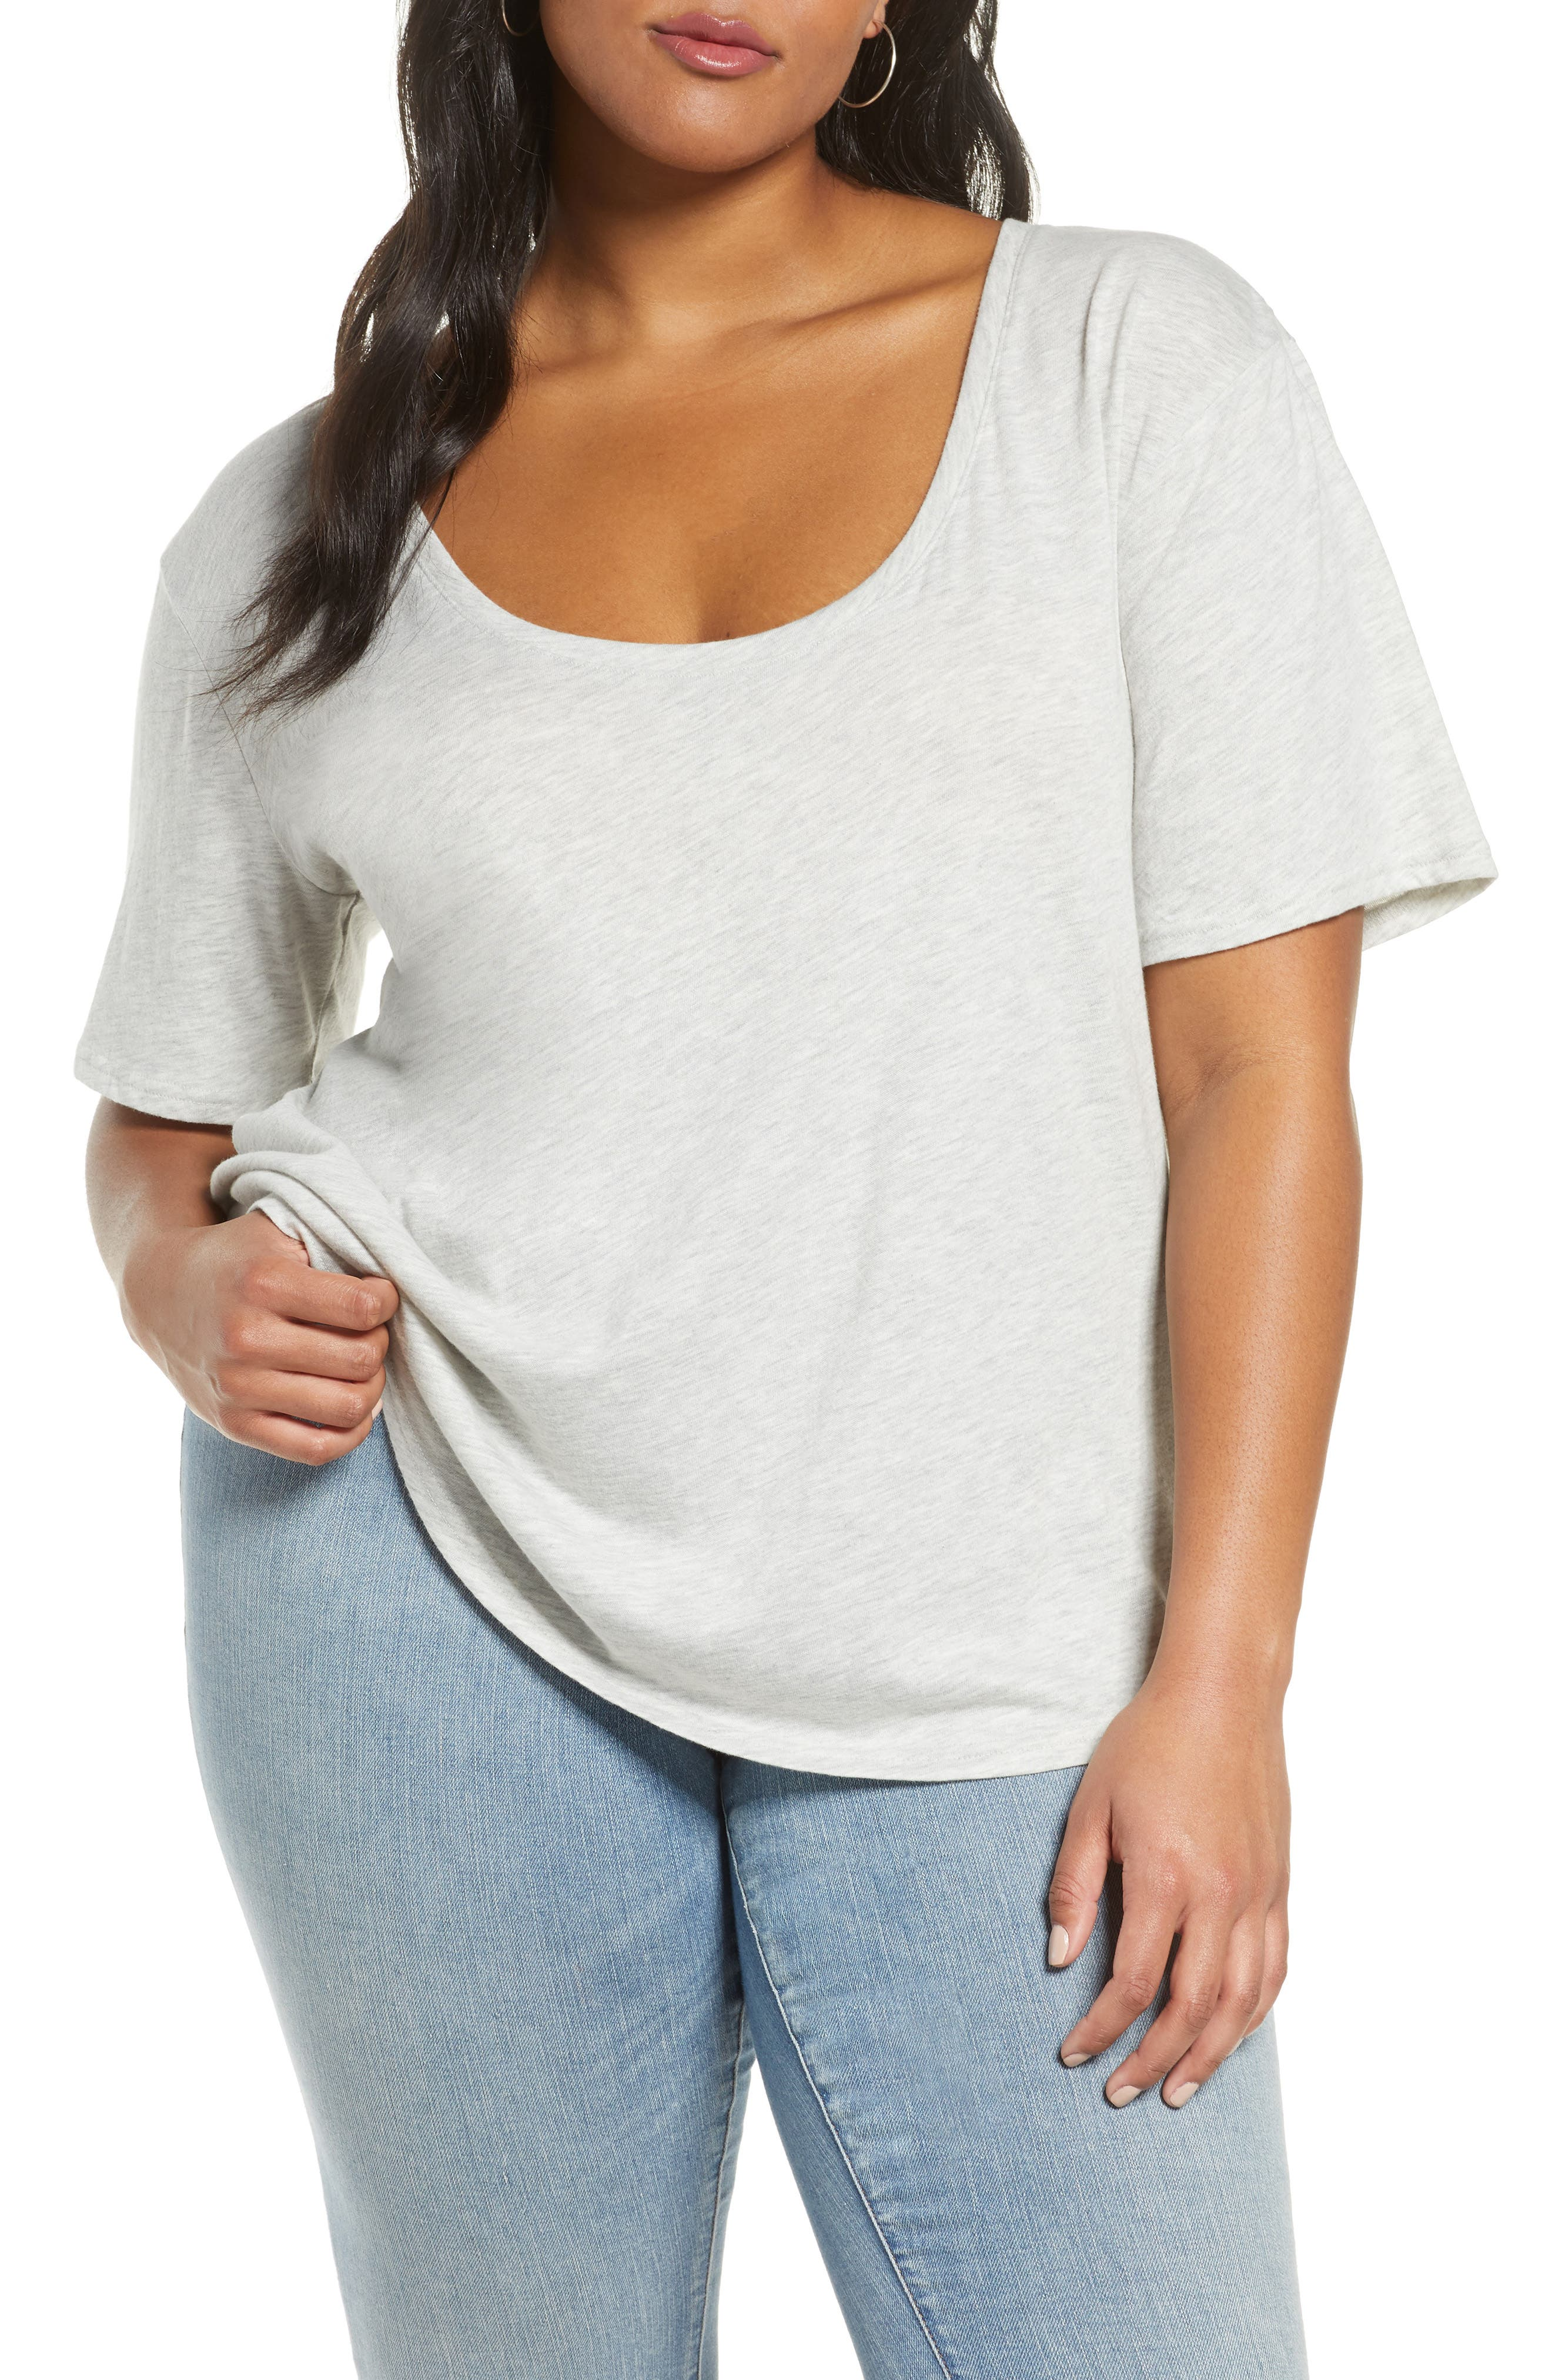 NEW WONENS EMPIRE PULL OVER FINE COTTON TOPS FITTEDTEE SMALL SIZE